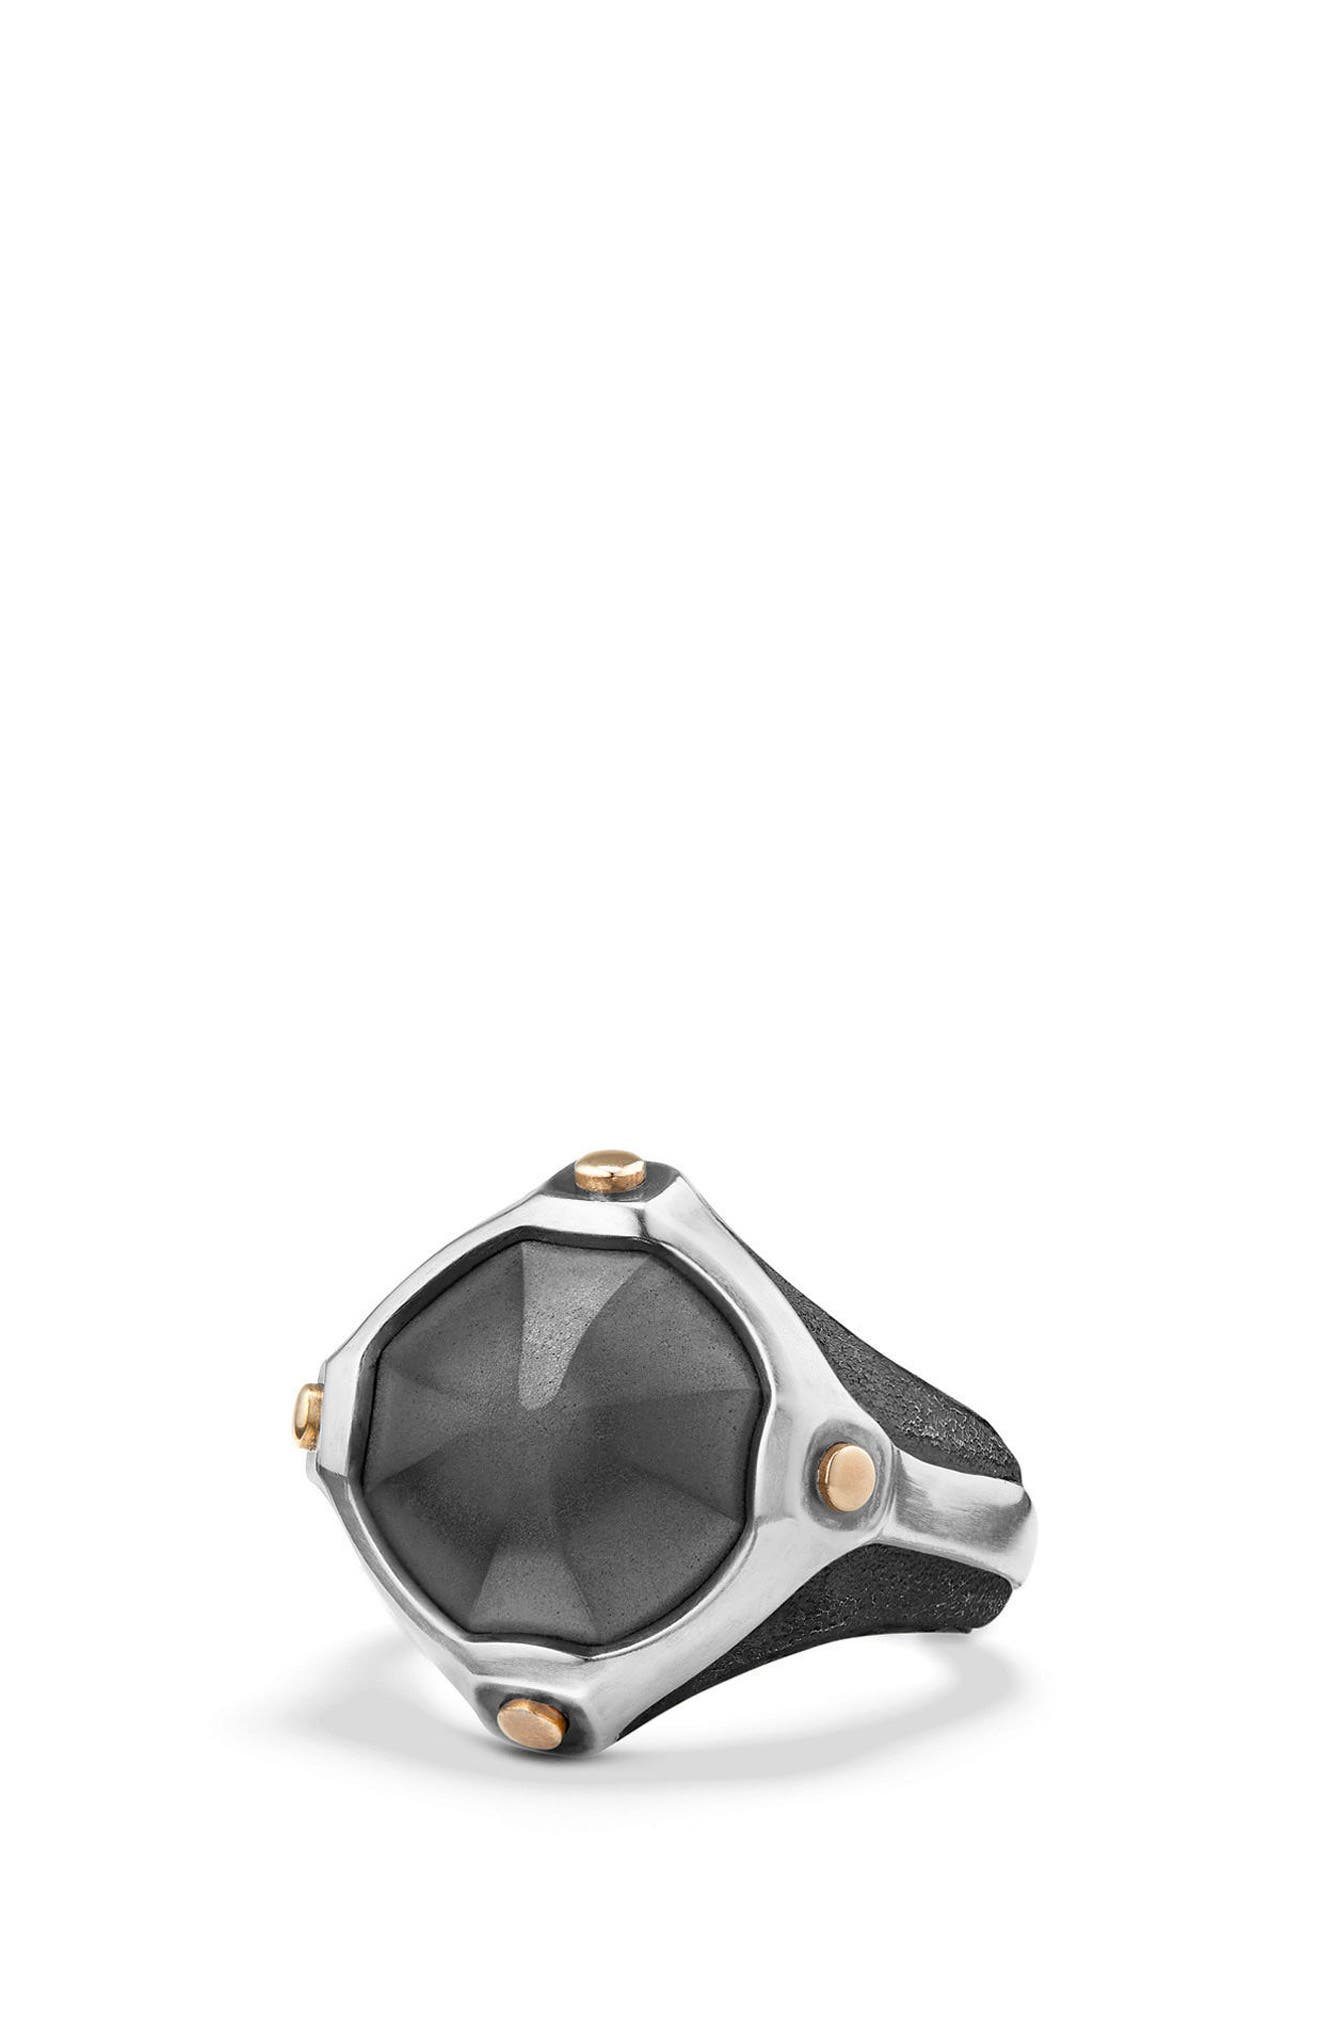 David Yurman Anvil Signet Ring